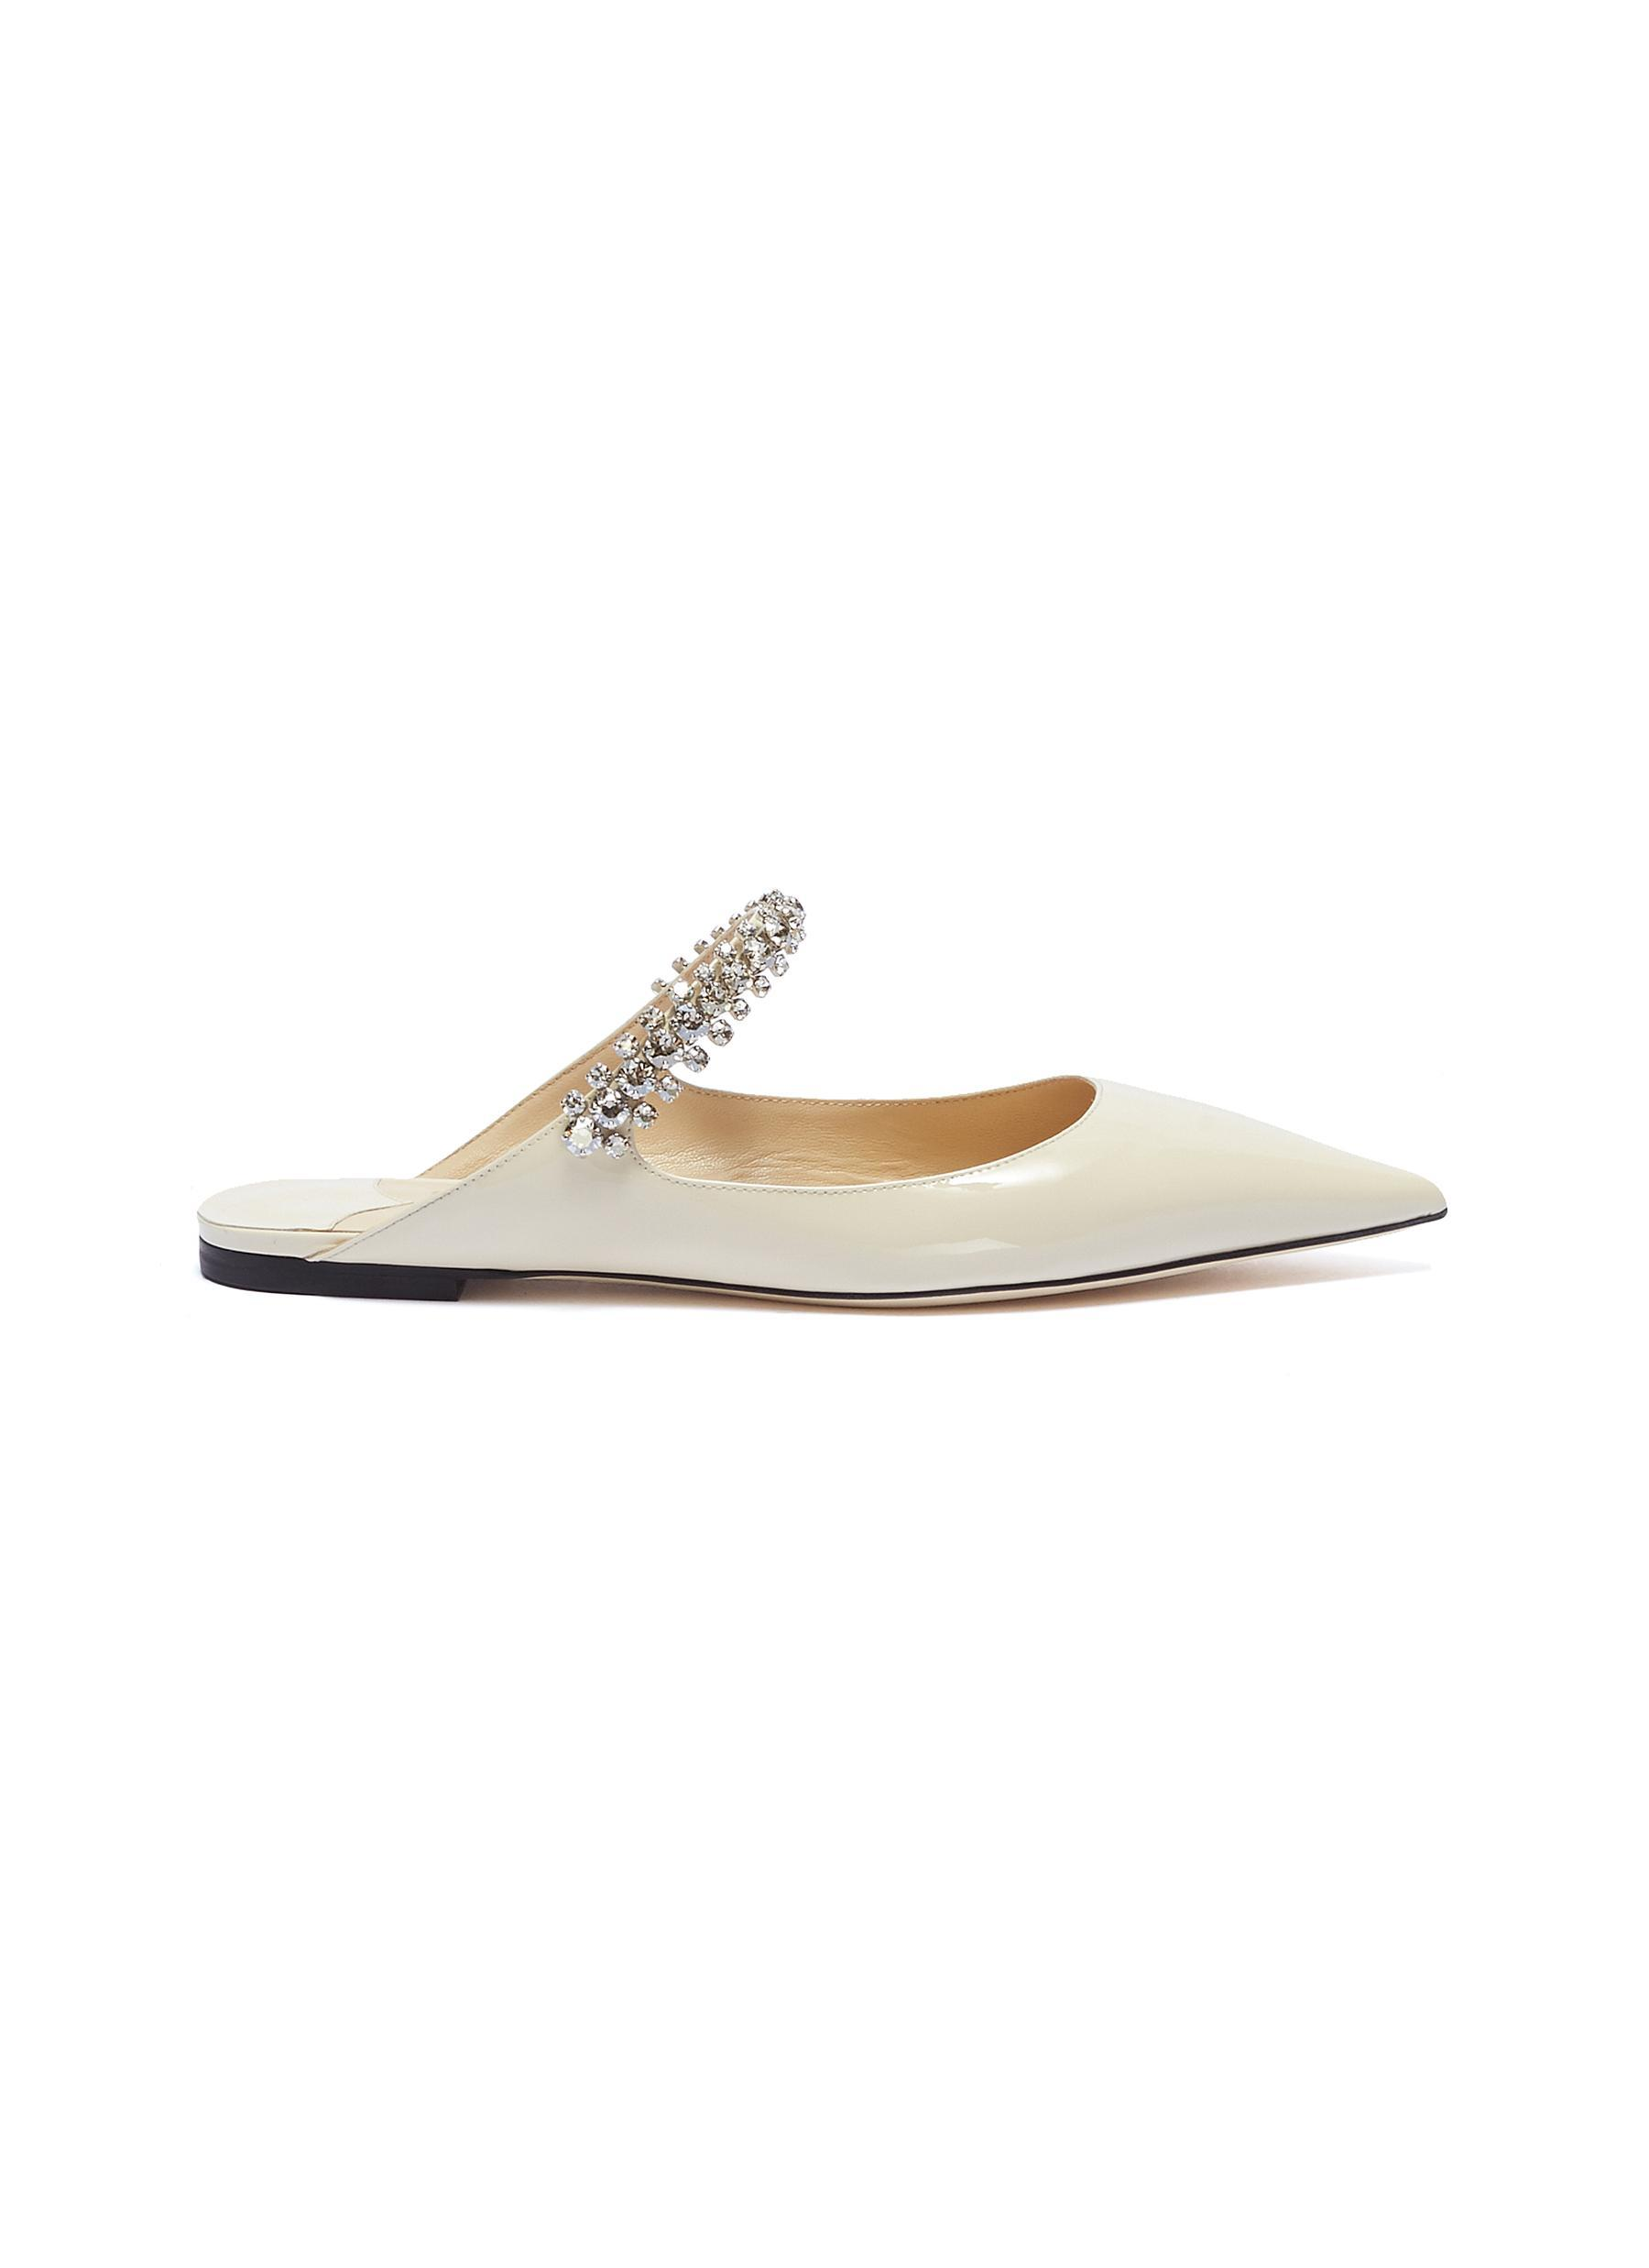 48a414004976 Jimmy Choo  bing  Glass Crystal Strap Patent Leather Slides in White ...